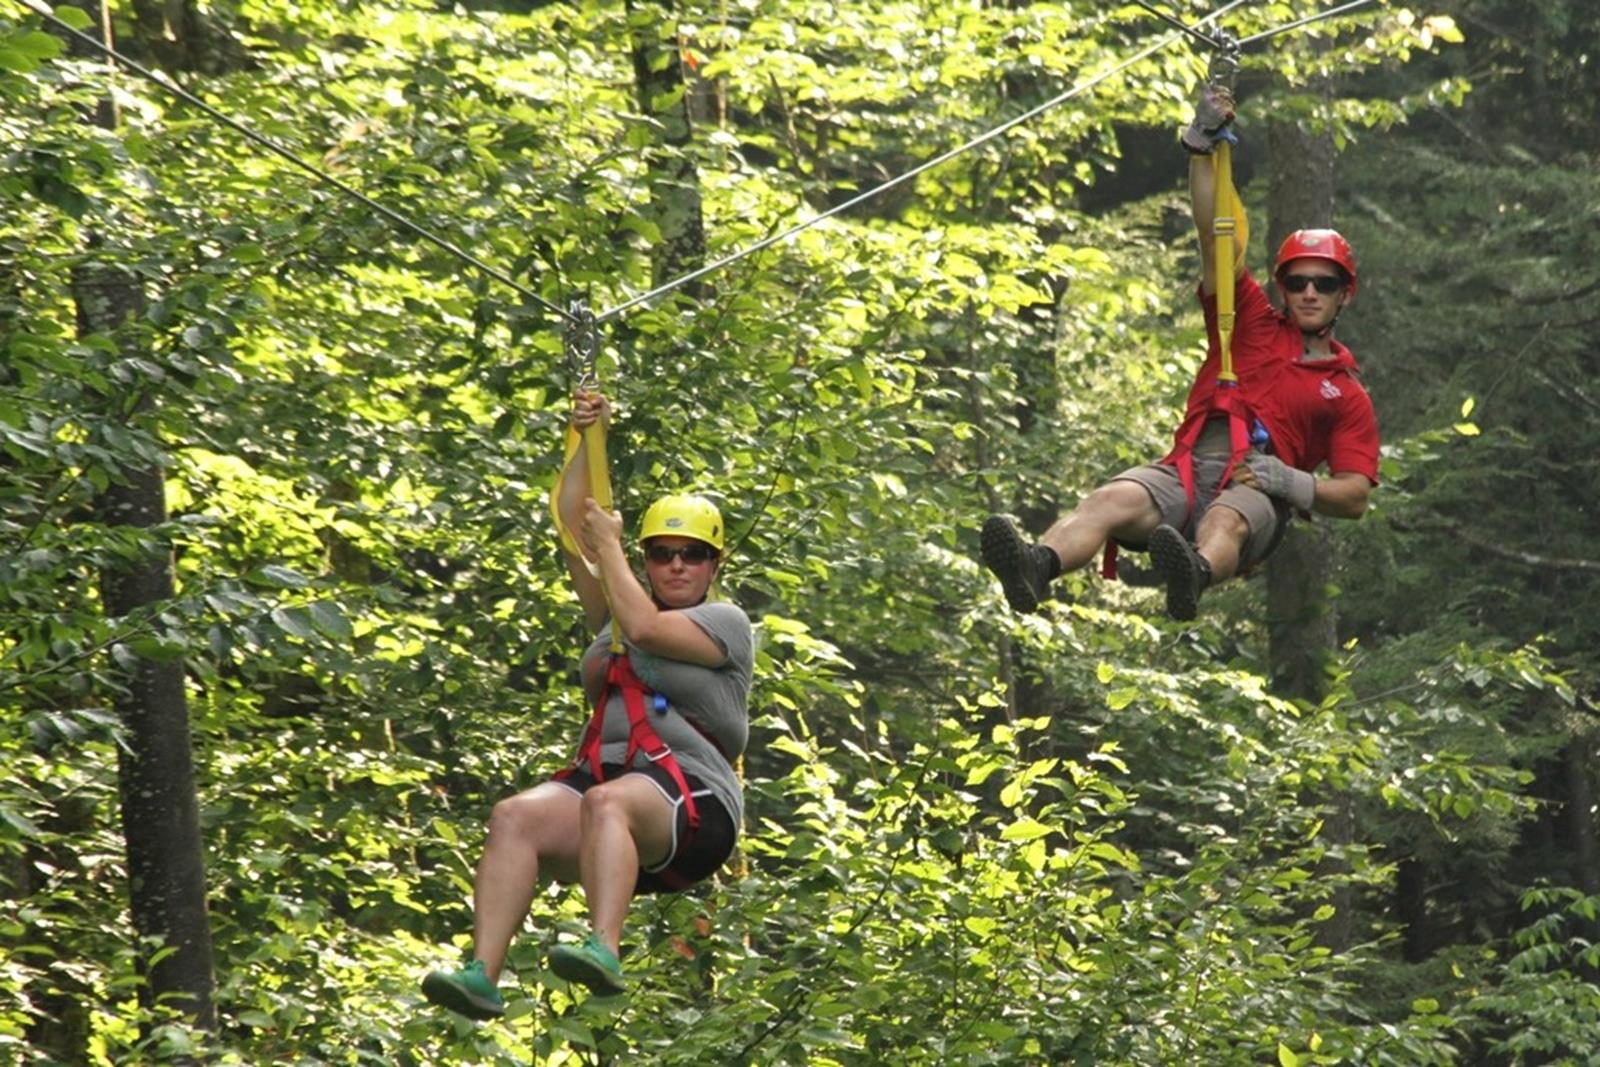 Tourists ziplineing through a canopy of trees.